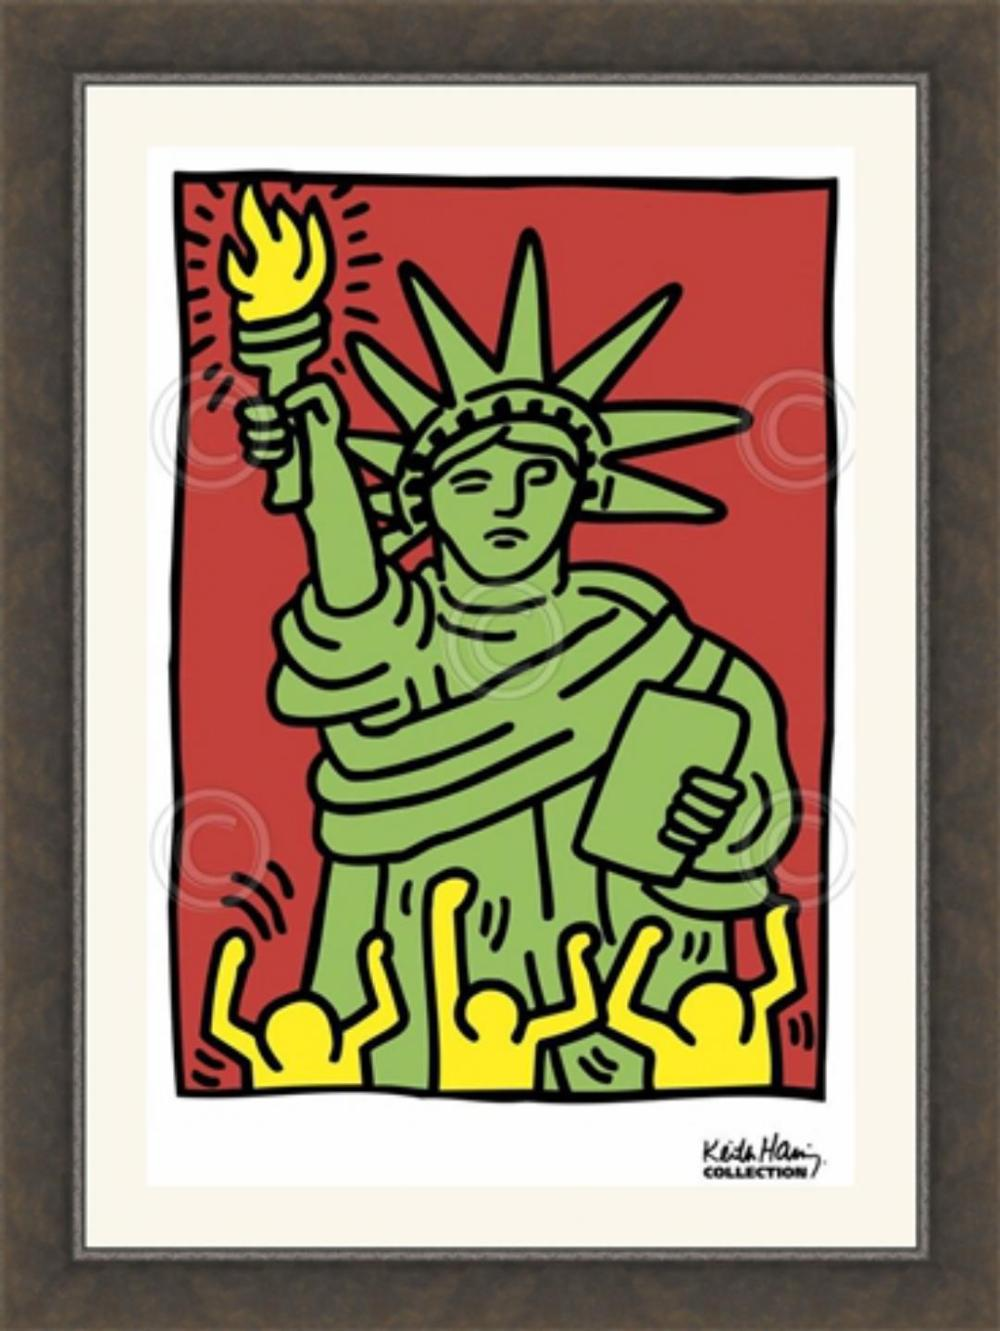 Keith Haring, 1986, Statue of Liberty, Art Print, Offset Lithograph 11x14